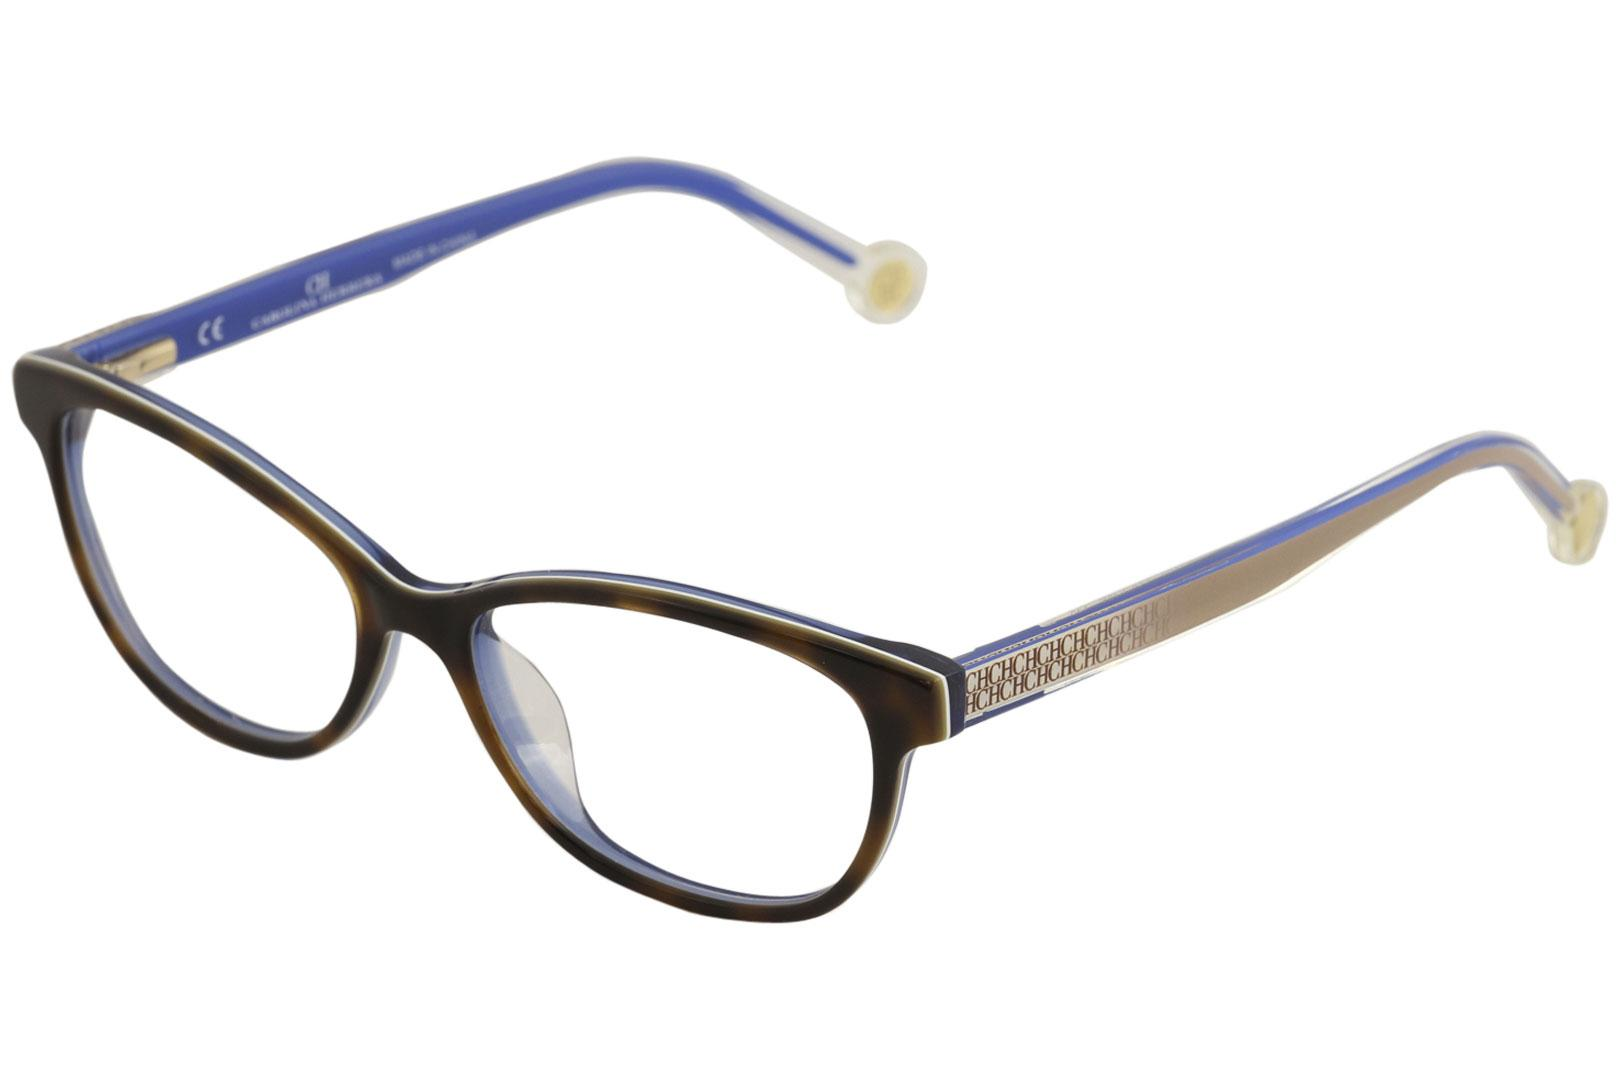 c6298f25521 CH Carolina Herrera Women s Eyeglasses VHE726K VHE 726 K Full Rim Optical  Frame